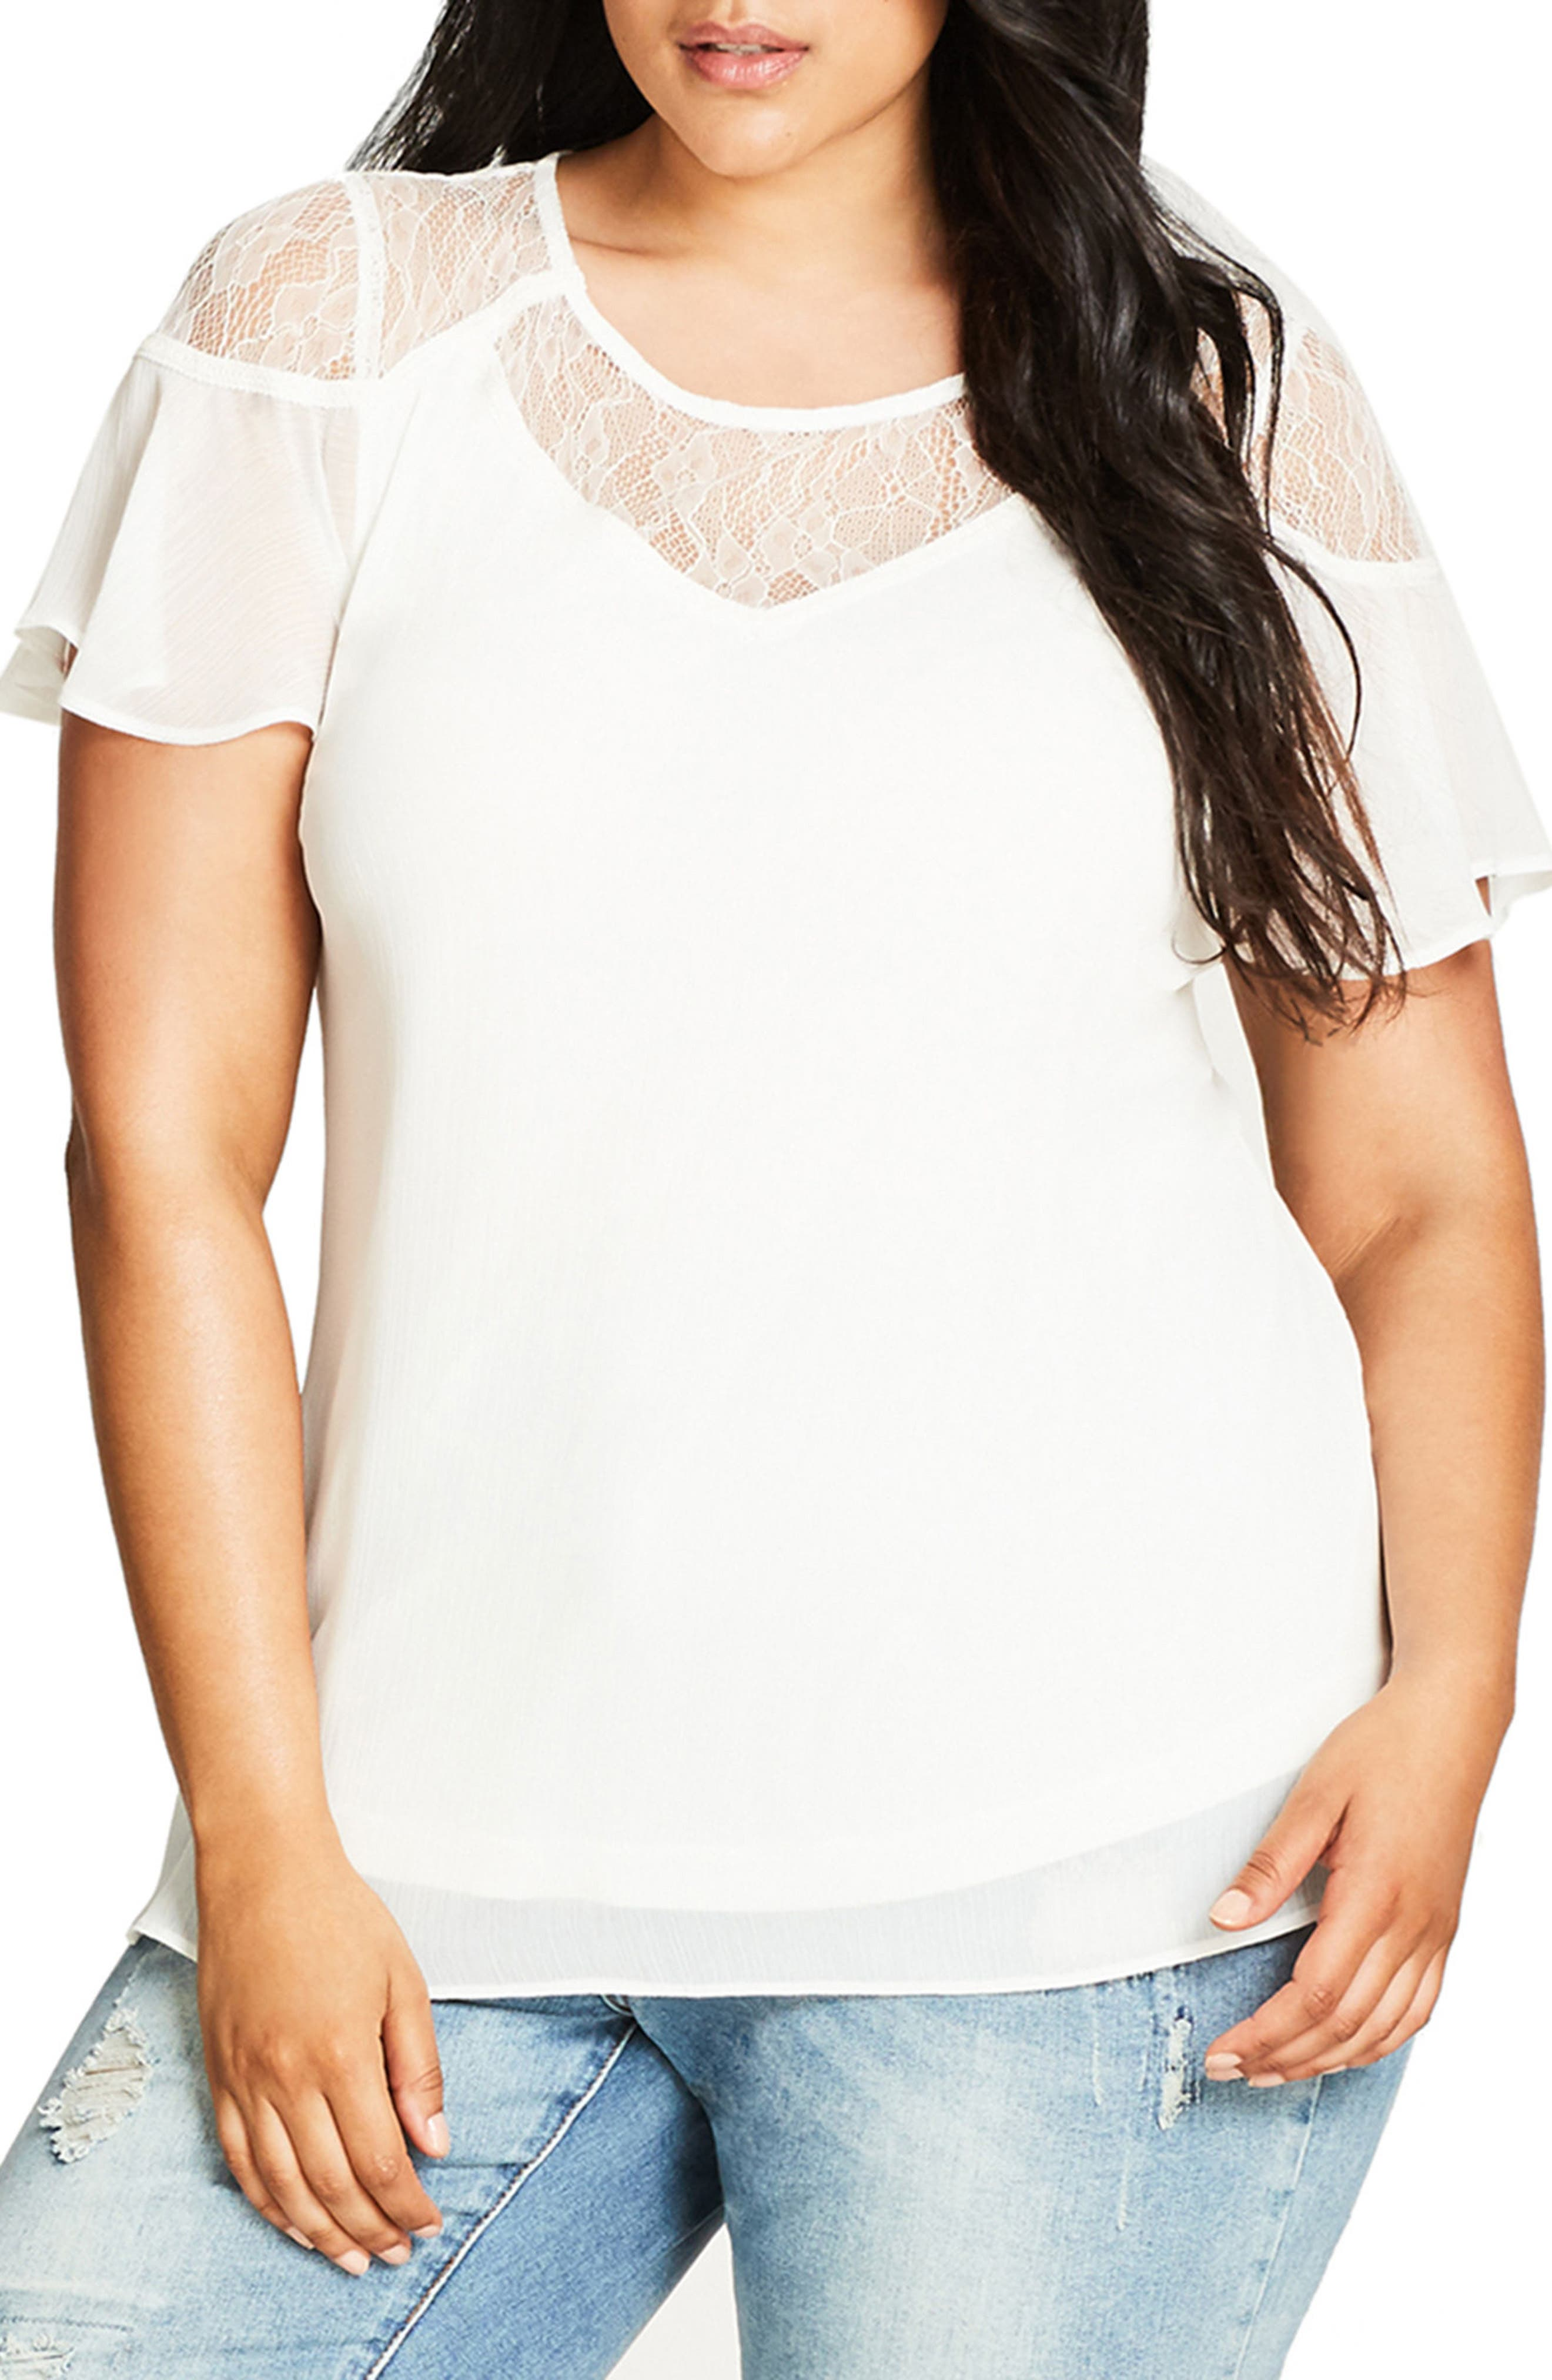 Main Image - City Chic Whimsy Lace Yoke Top (Plus Size)